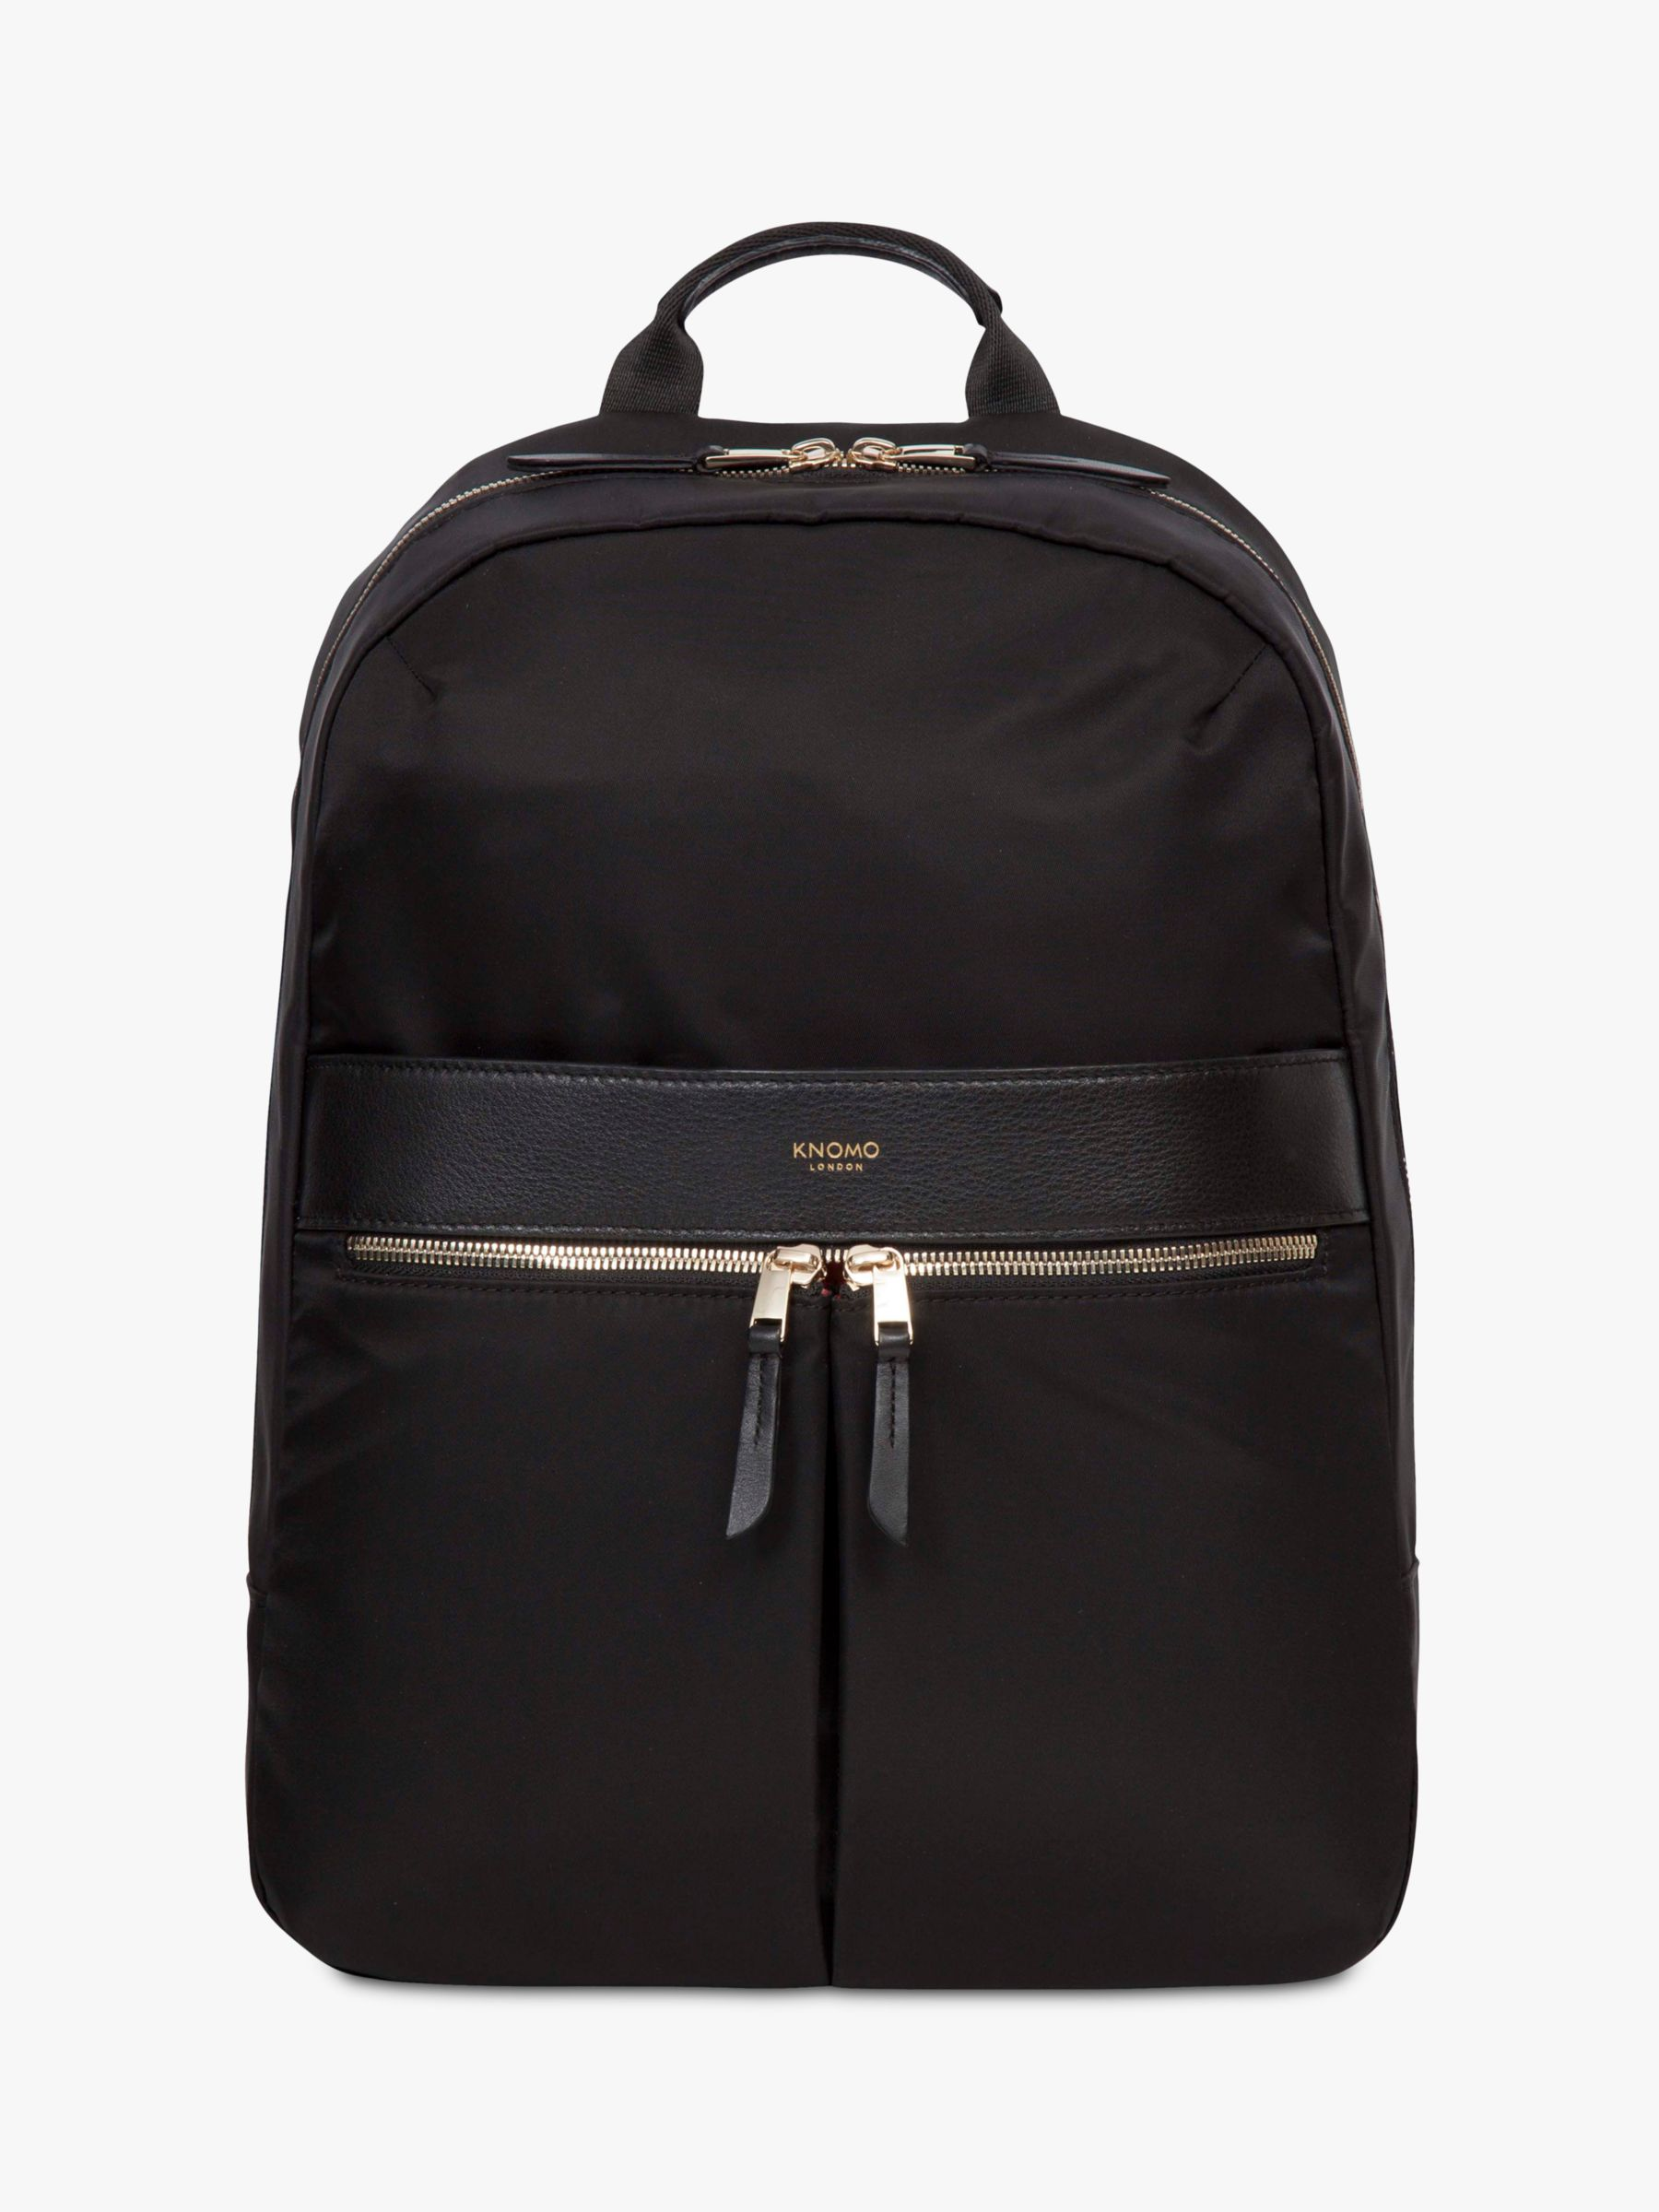 Knomo KNOMO Beauchamp Backpack for 14 Laptops